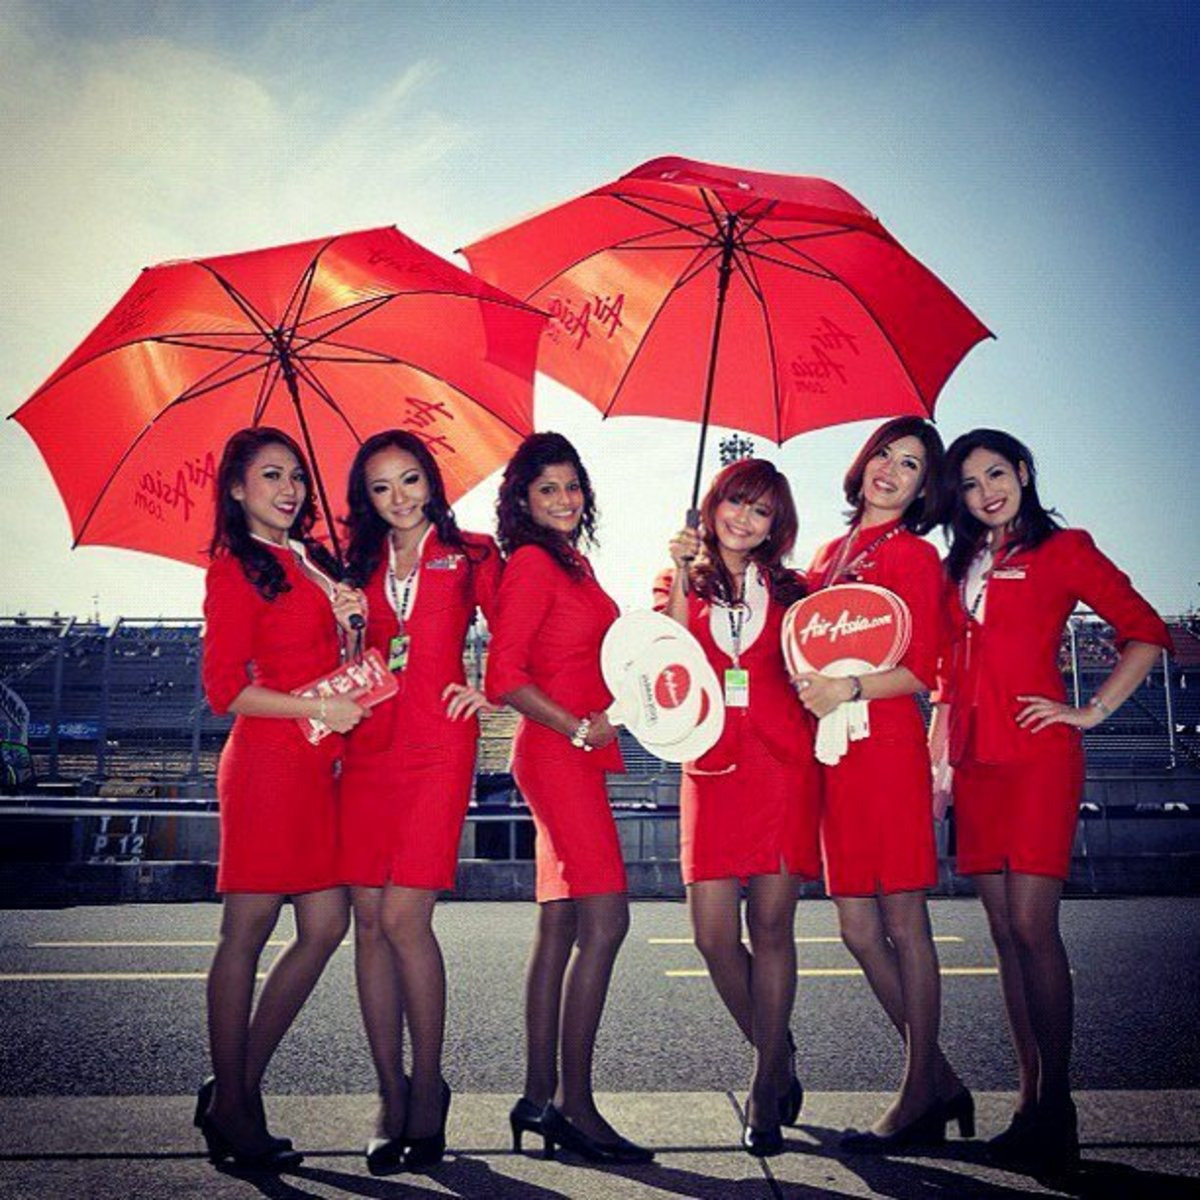 Top Asian Airlines Flight Attendant Uniforms - Glamour or Functional?